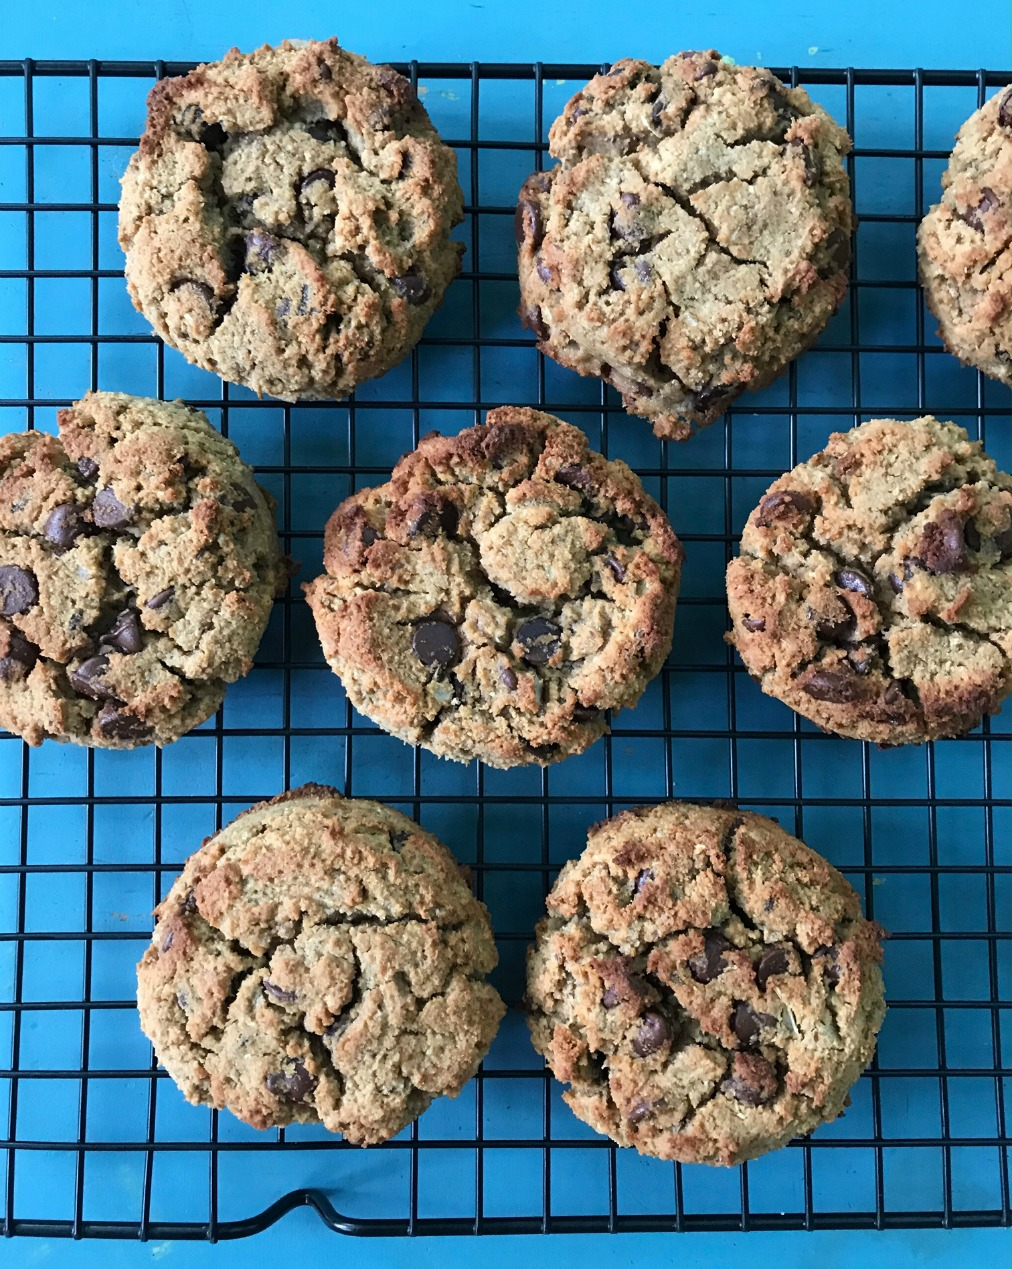 Cali'flour Kitchen Nana's Chocolate Chip Cookies try small things